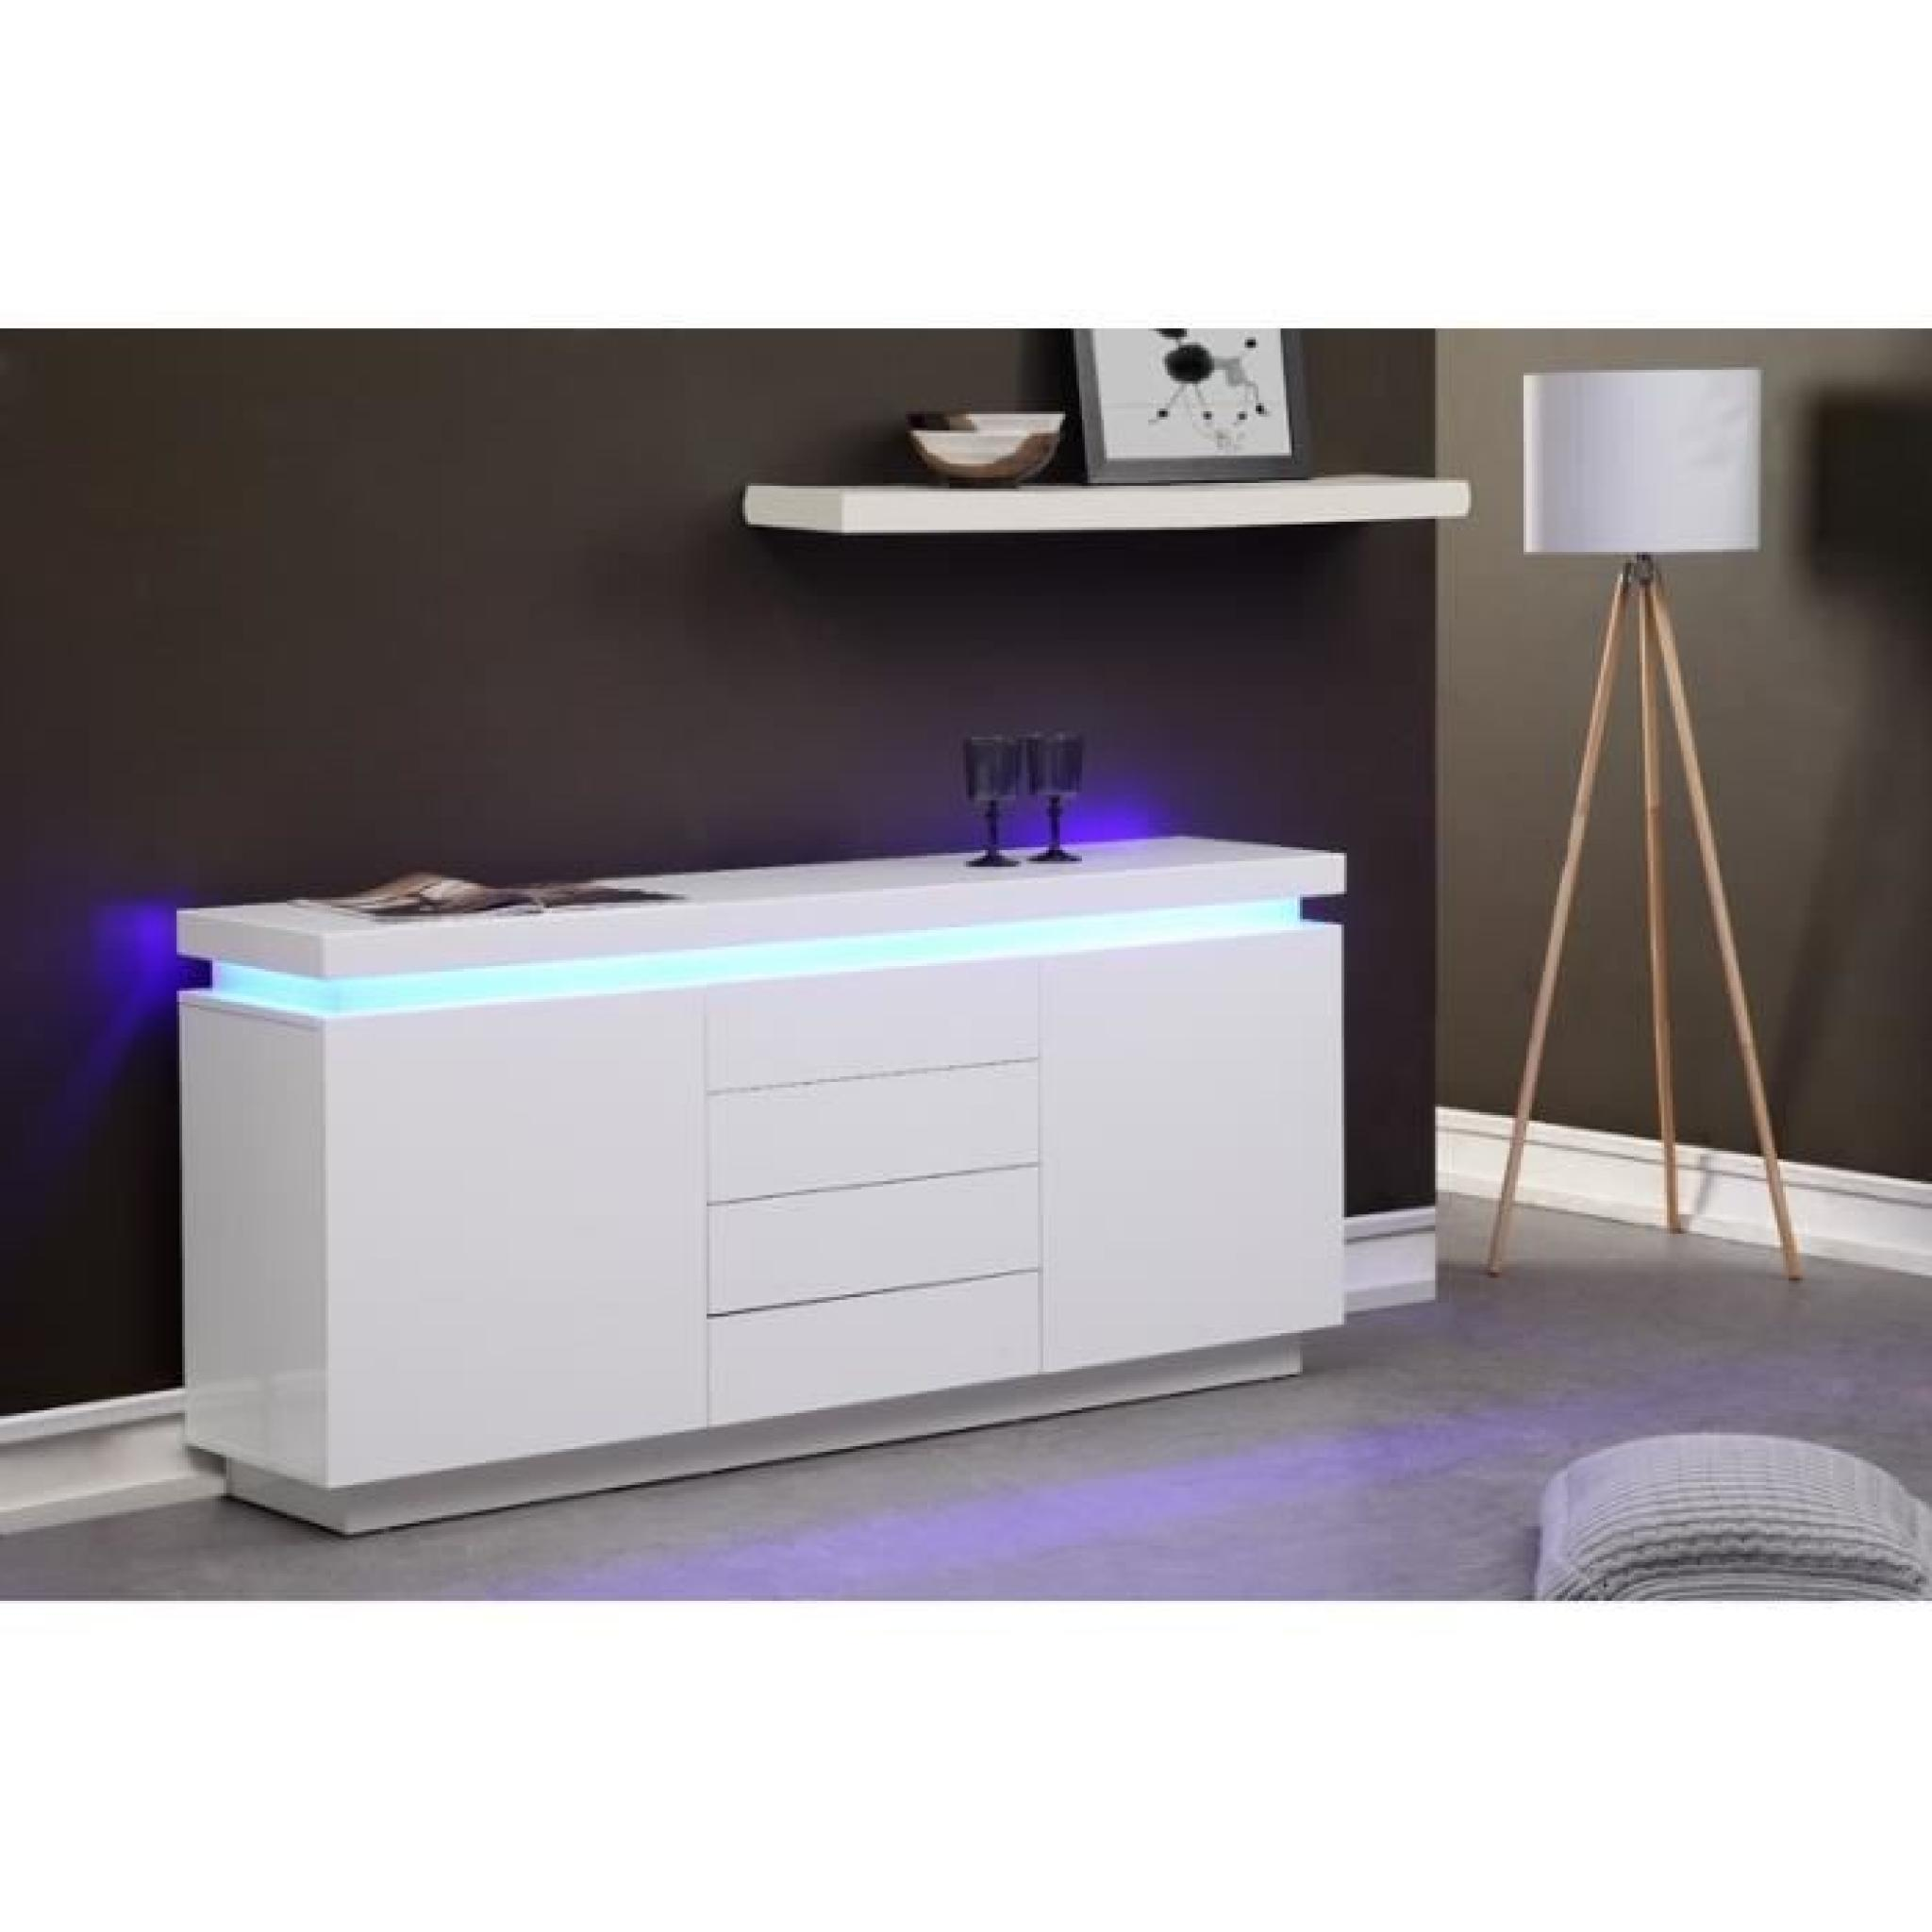 flash buffet 175cm blanc laqu avec led bleue achat vente buffet pas cher couleur et. Black Bedroom Furniture Sets. Home Design Ideas